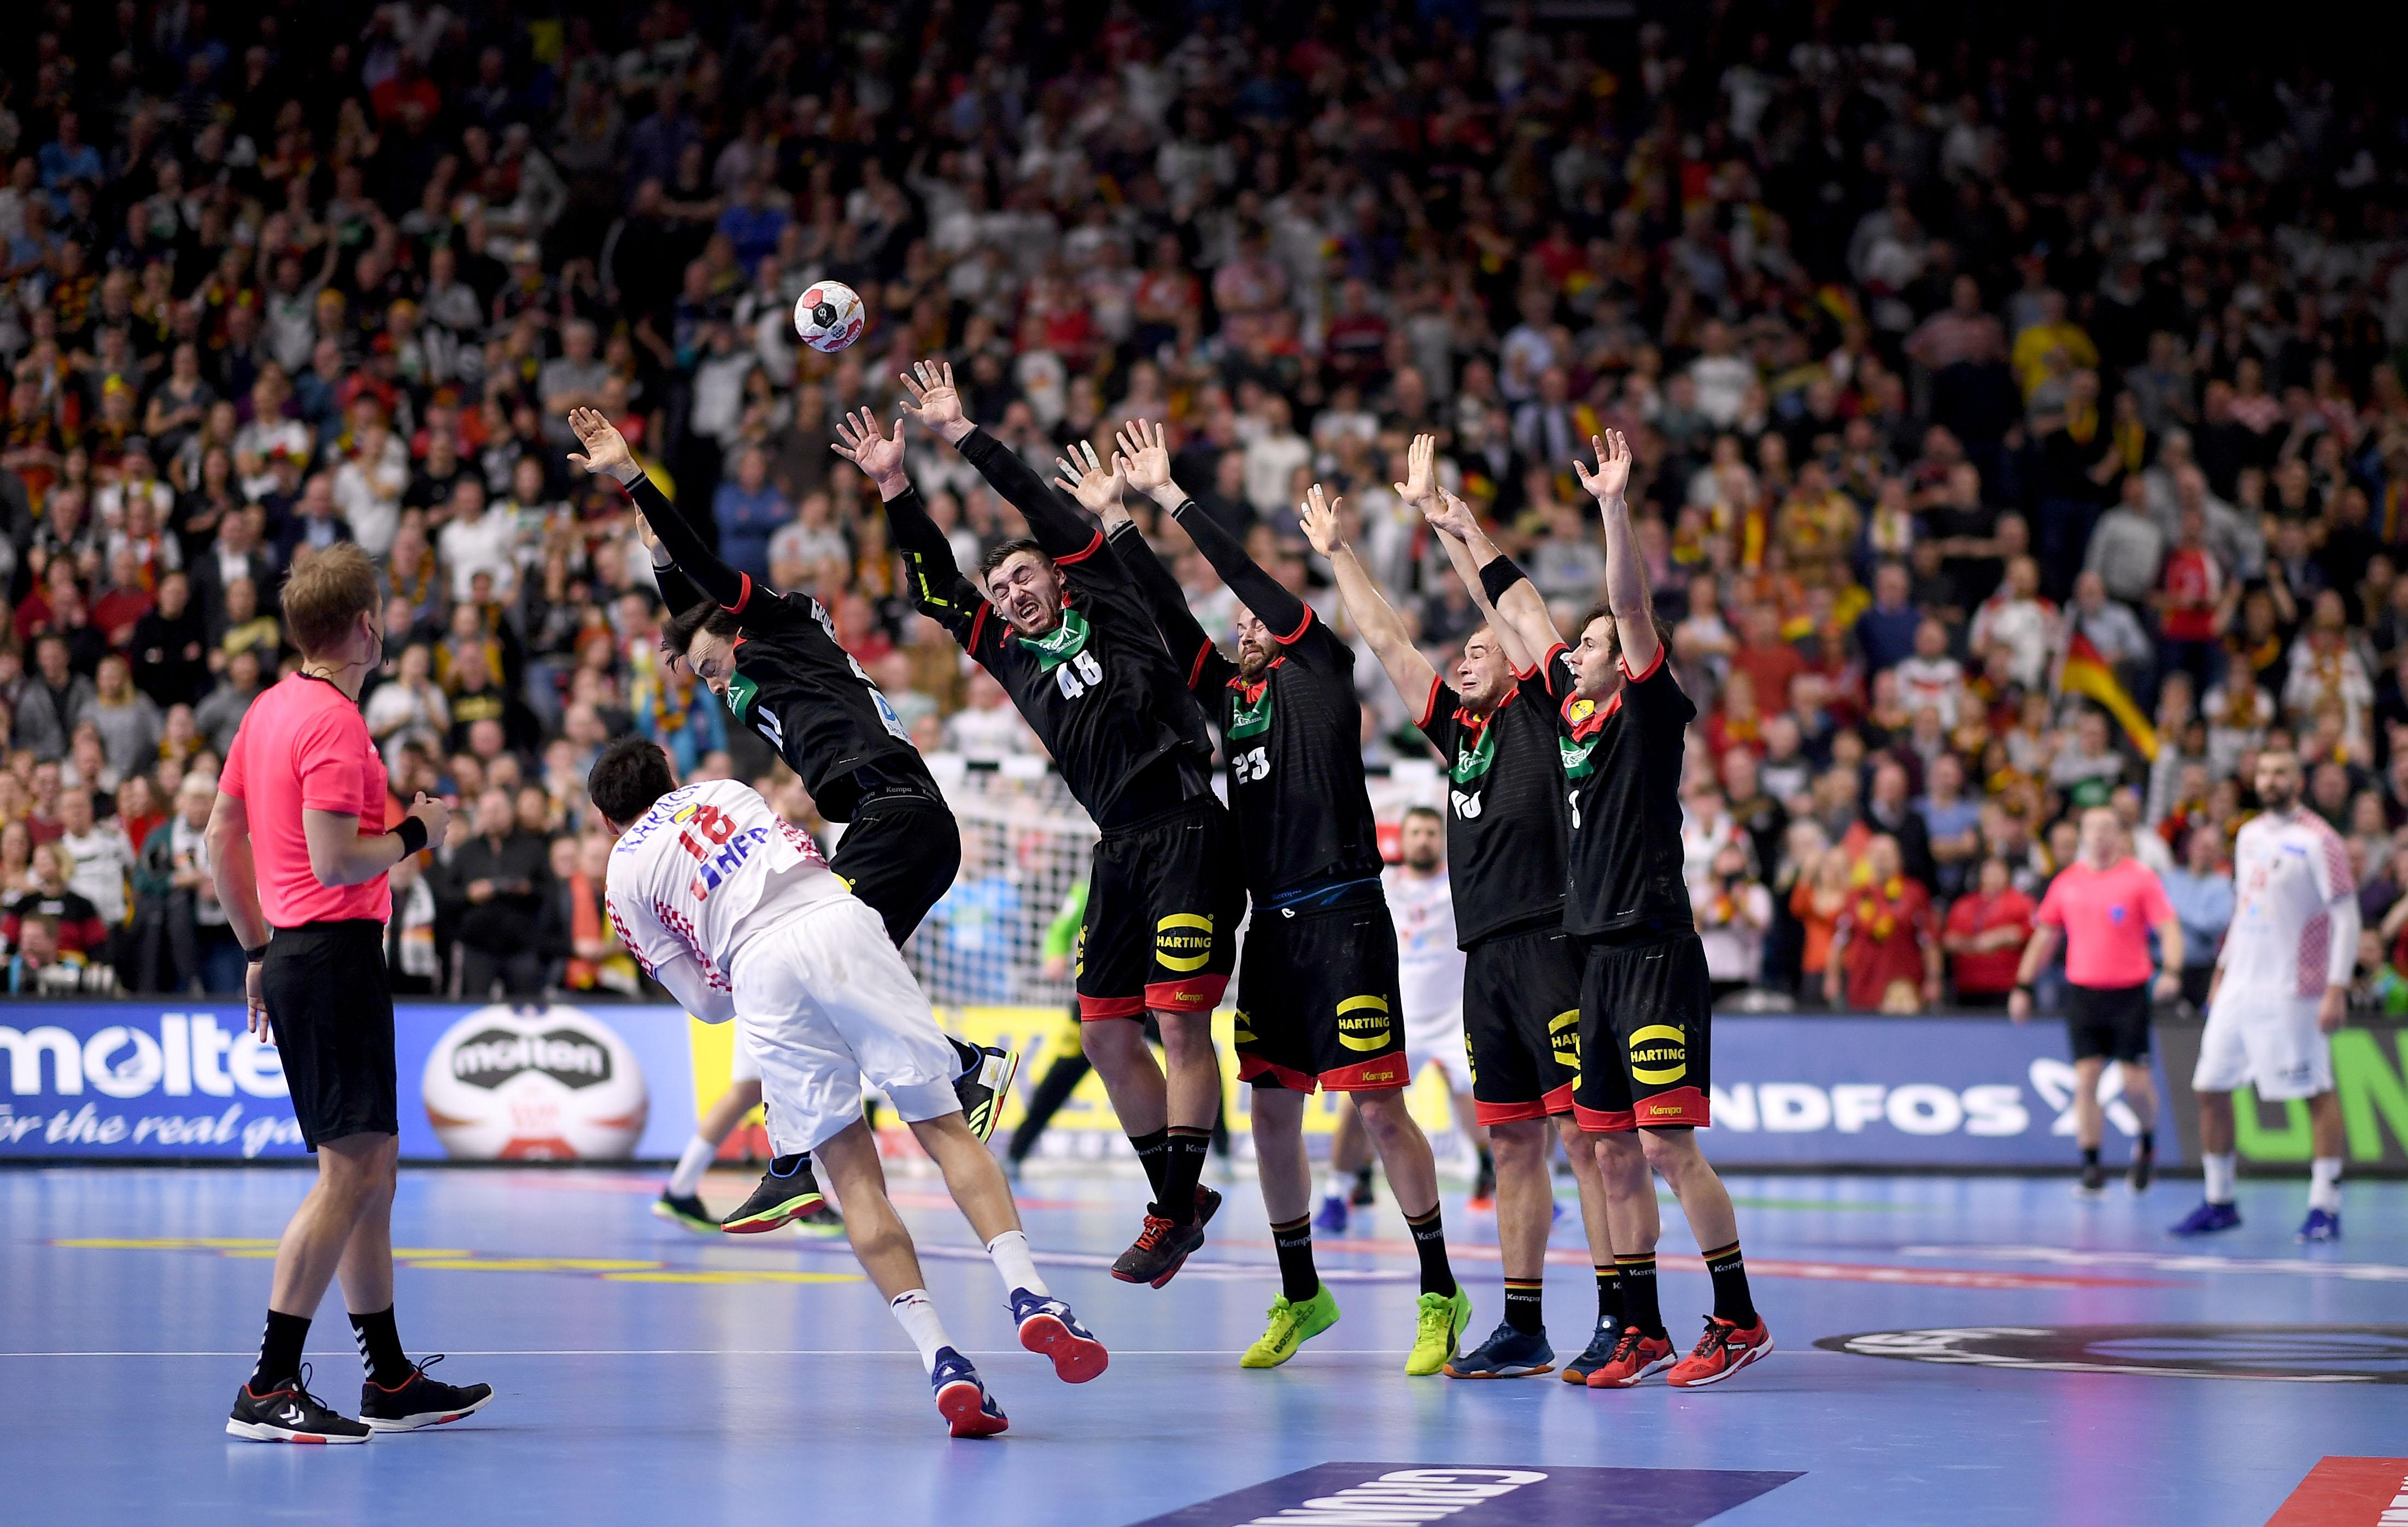 Handball Wm 2019 Livestream Zdf